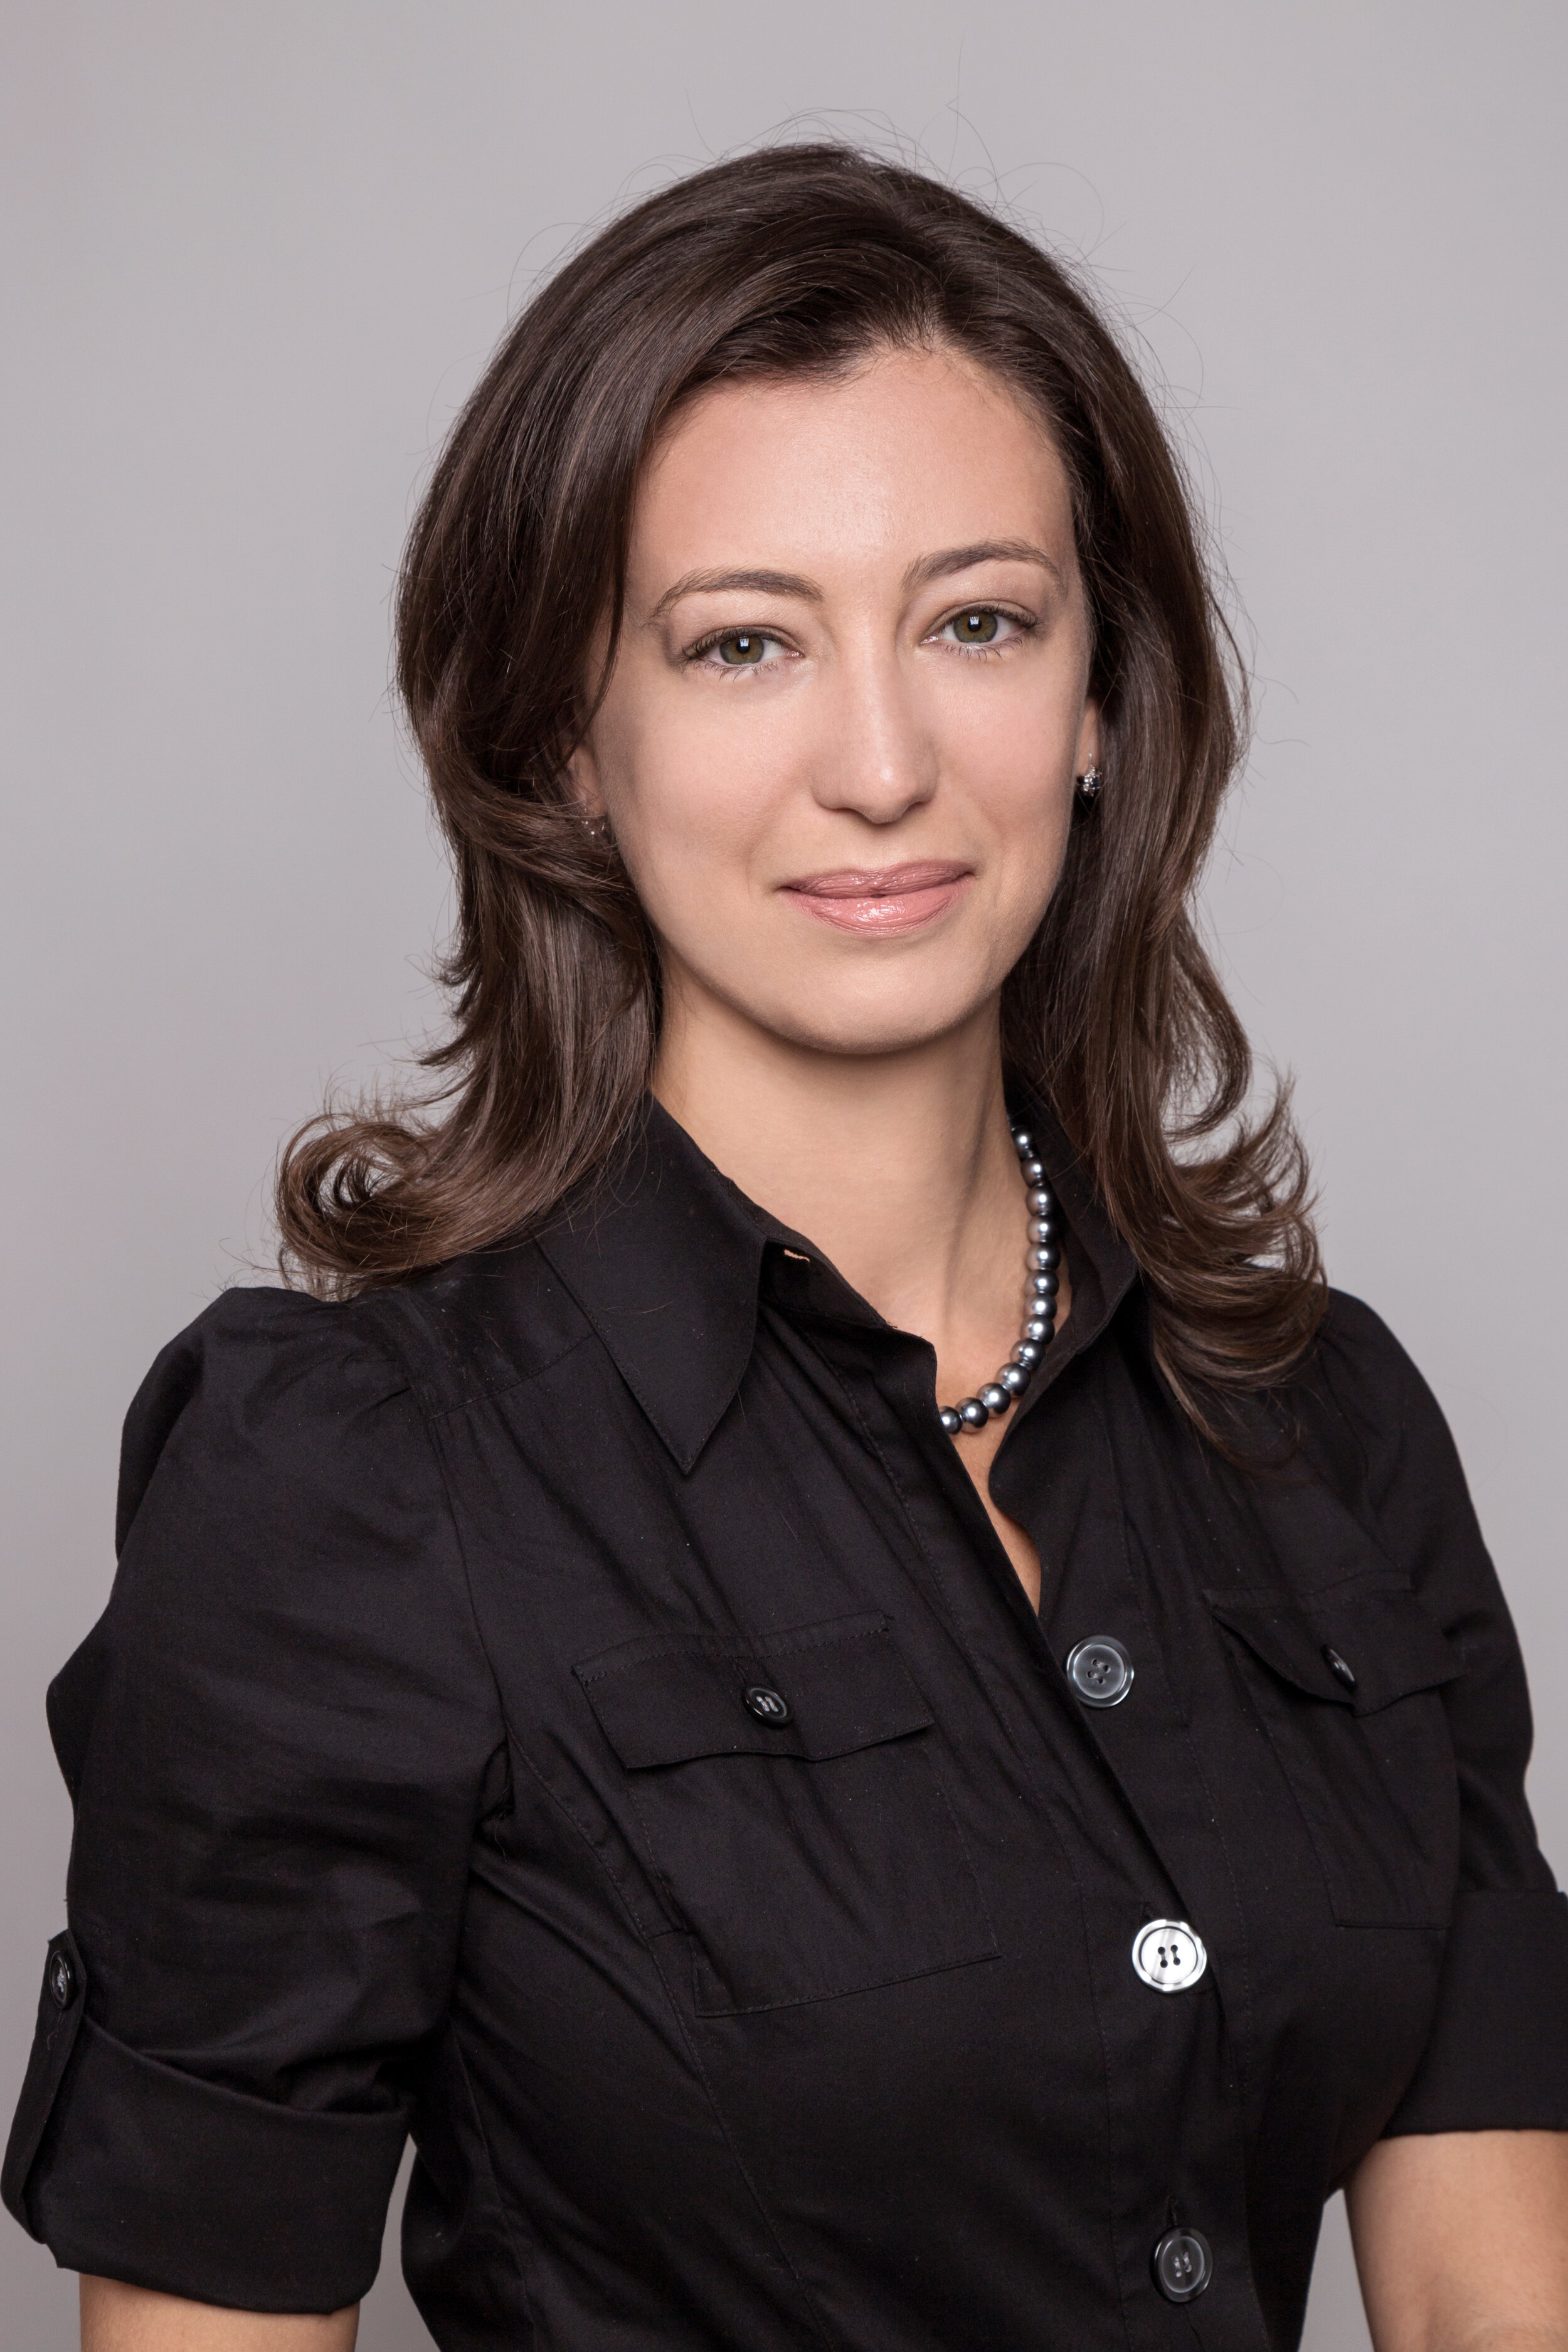 Irina Berkon - Berkon, is a proven finance and accounting leader, a CPA with over 15 years of progressive hands-on experience in corporate finance. She brings a solid background in the fields of IPO, start-ups, M&A, financial audits, international accounting and tax structure (US, RU, EU), corporate strategic planning and development, deal structures, sales/supply channels establishment and financing activities. Irina is a member of various industry-specific groups and participates in publications, talks and panels on topics such as fintech, blockchain, compliance and leadership. She has delivered award-winning pitches in her role as CFO, written publications on various topics and has been featured in Forbes and other publications on the topic of fintech on blockchian. Irina is a Managing Director of 'Golden Seeds' one of the nation's most active early-stage investment firms focused on women-led businesses.